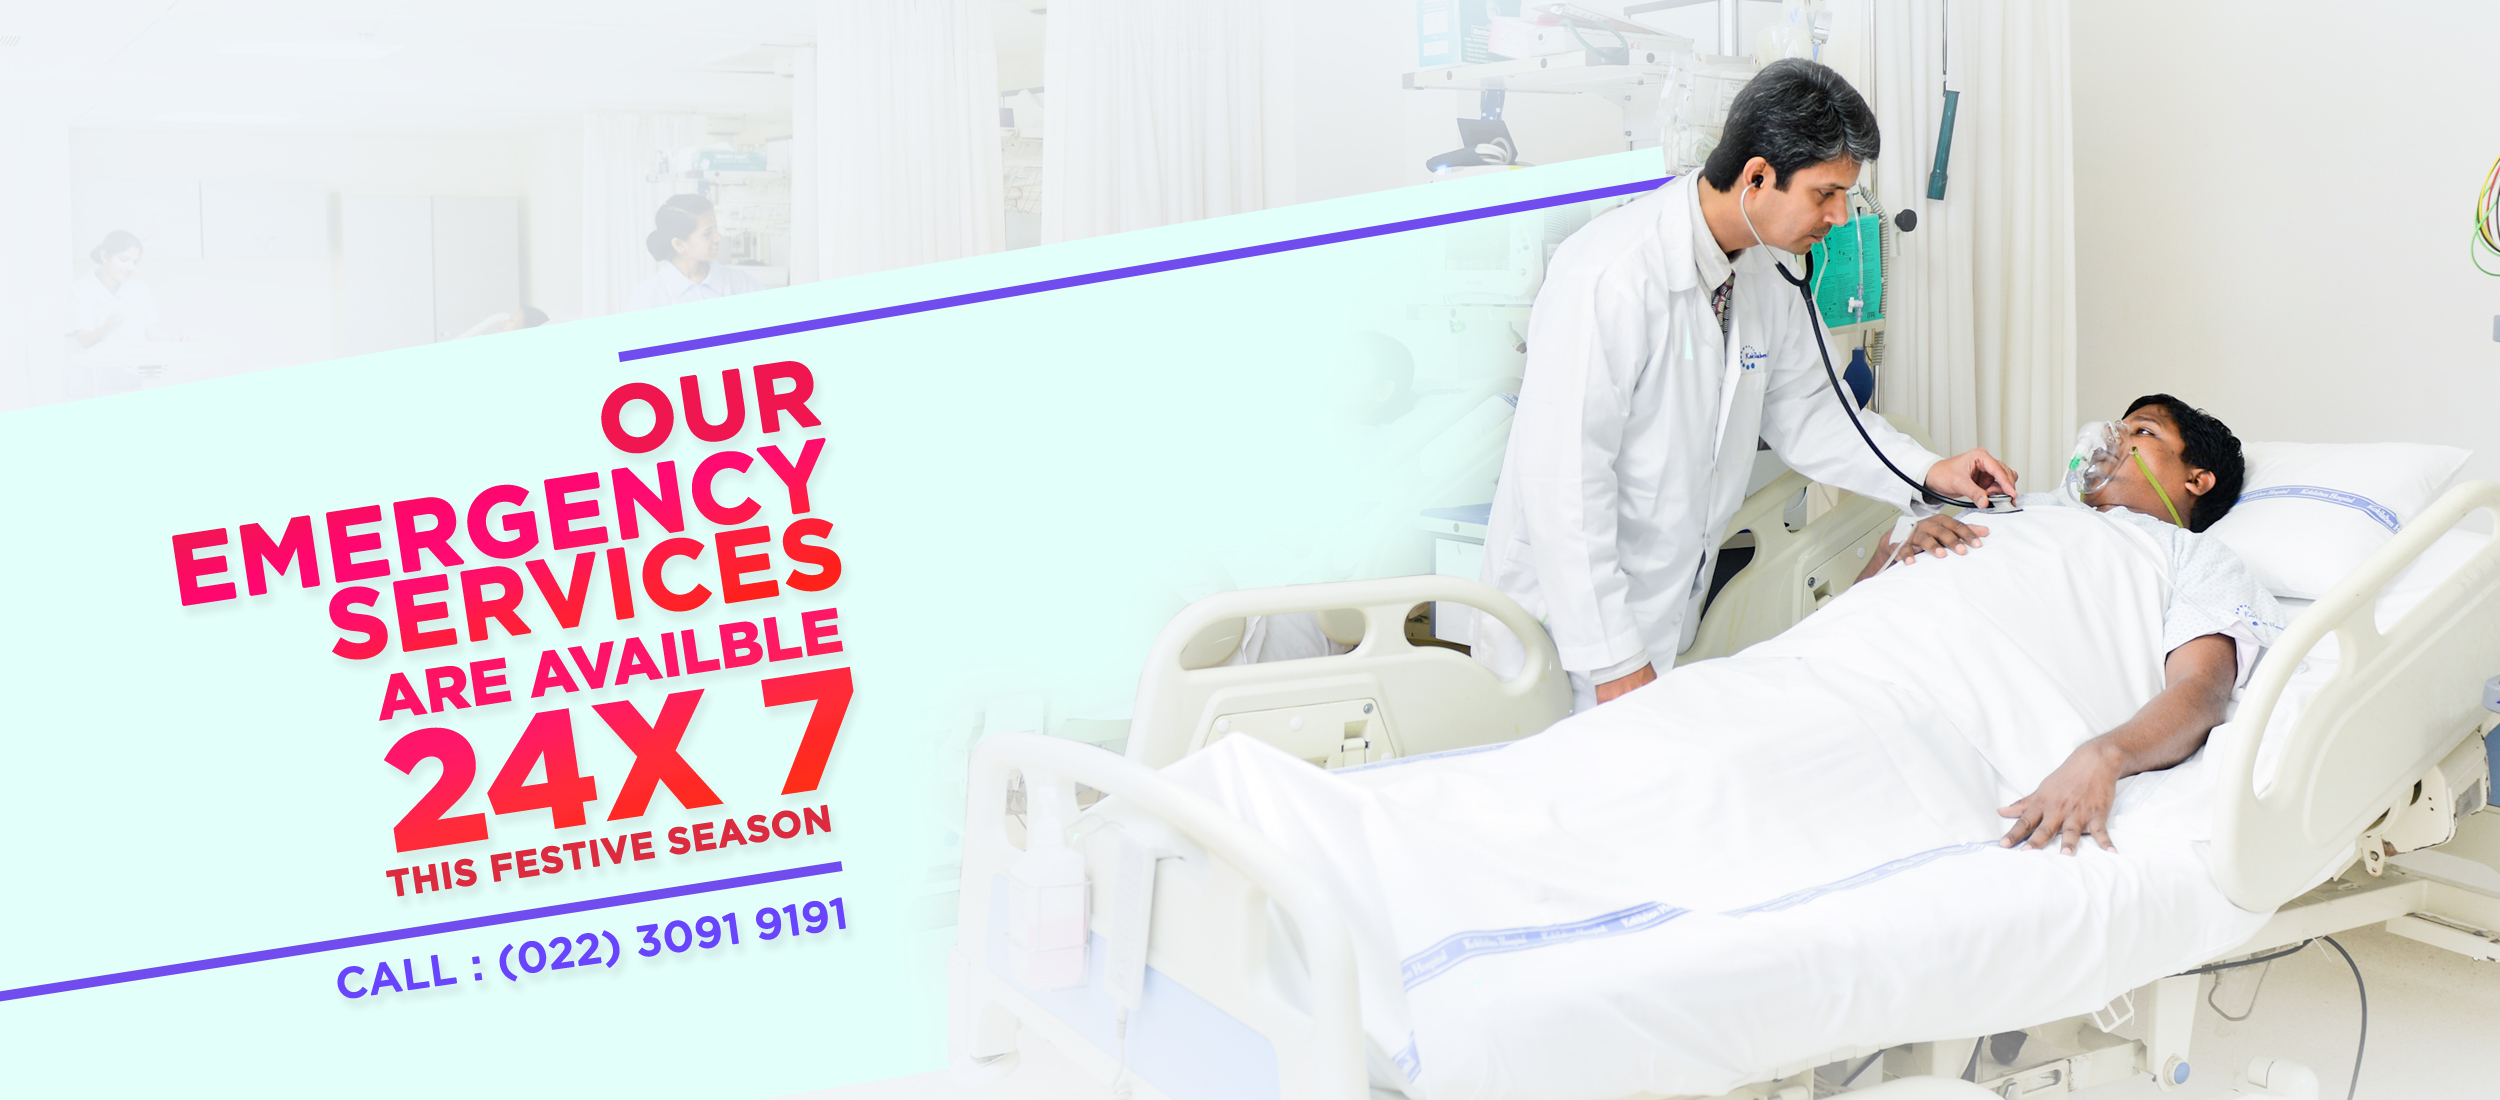 Kokilaben Dhirubhai Ambani Hospital - Our Emergency Services Are Availble 24x7 This Festive Season